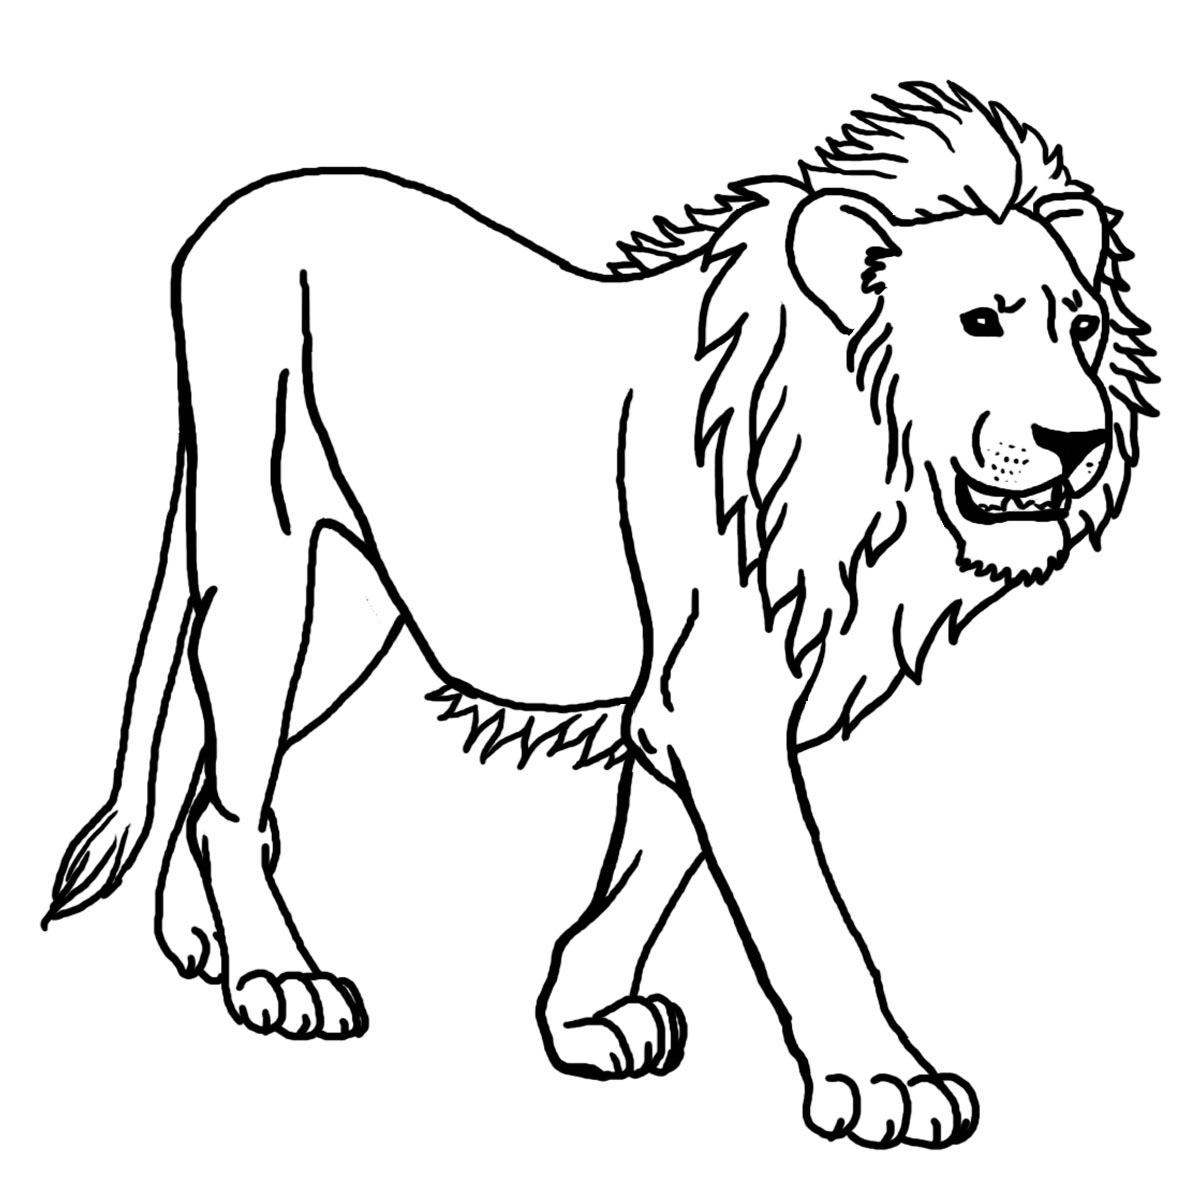 simple lion Animal Coloring pages for kids to print color